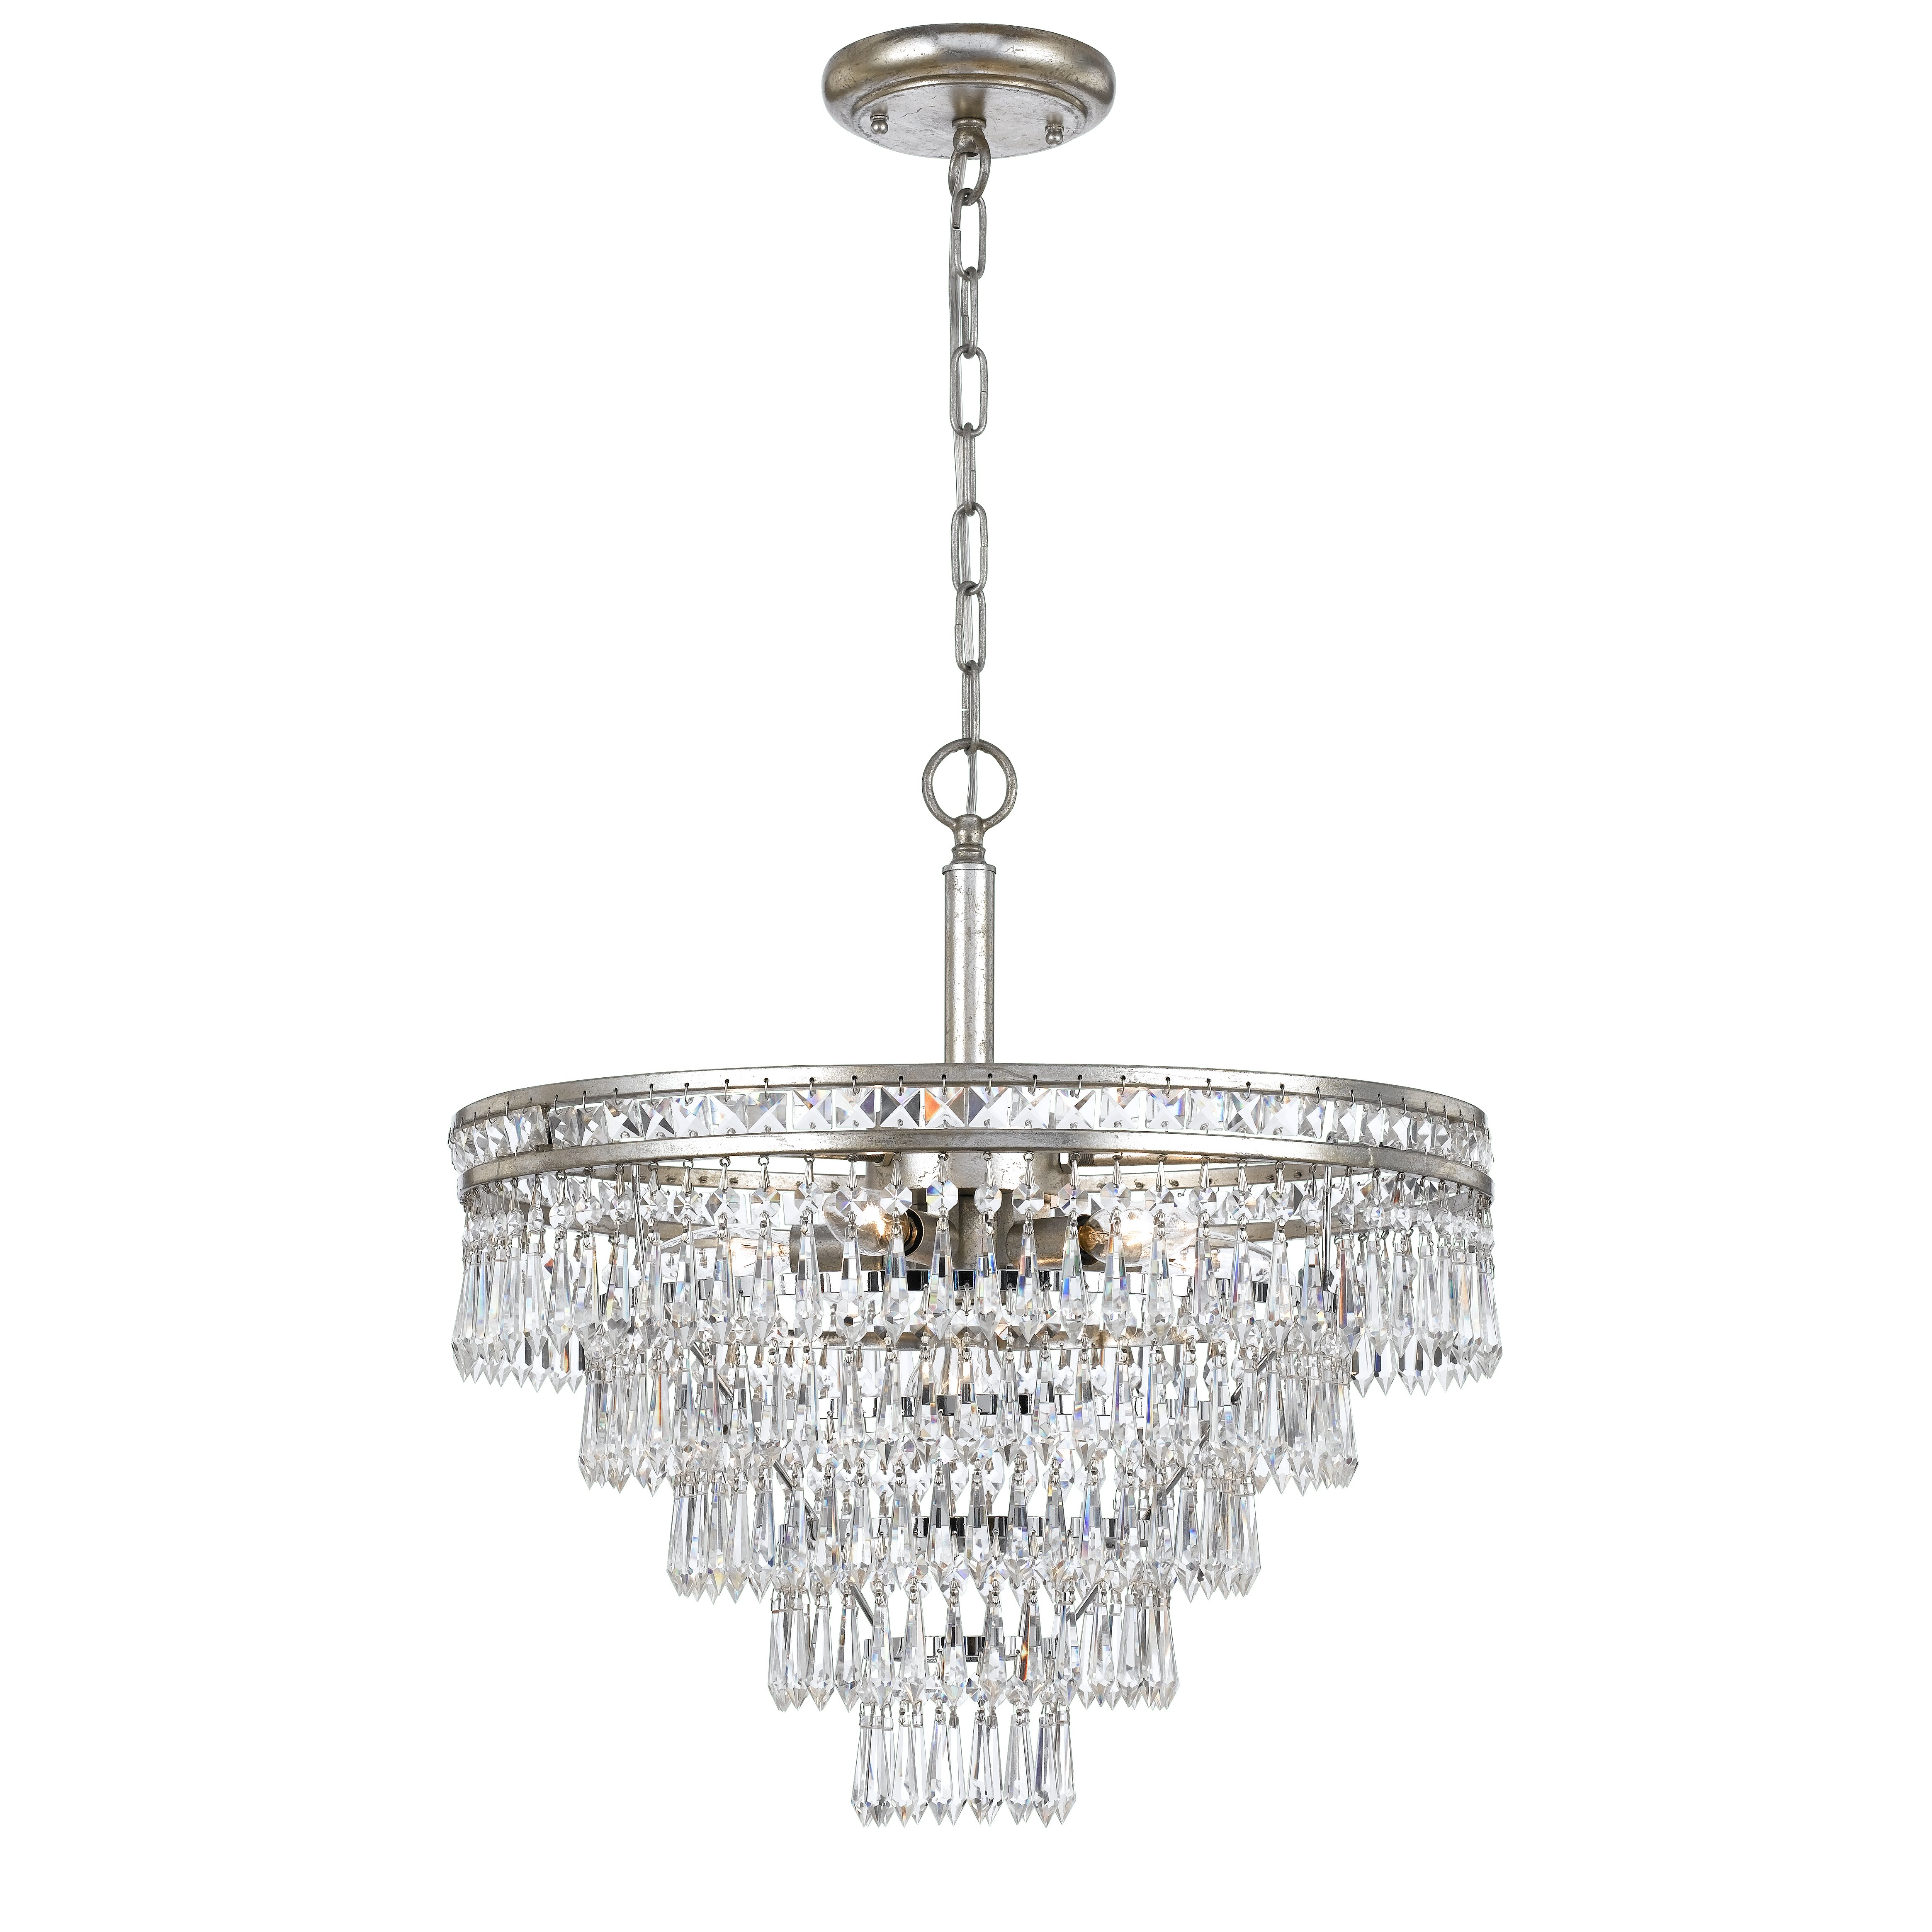 Crystorama Mercer 6Light Crystal Chandelier Reviews – Crystorama Chandeliers